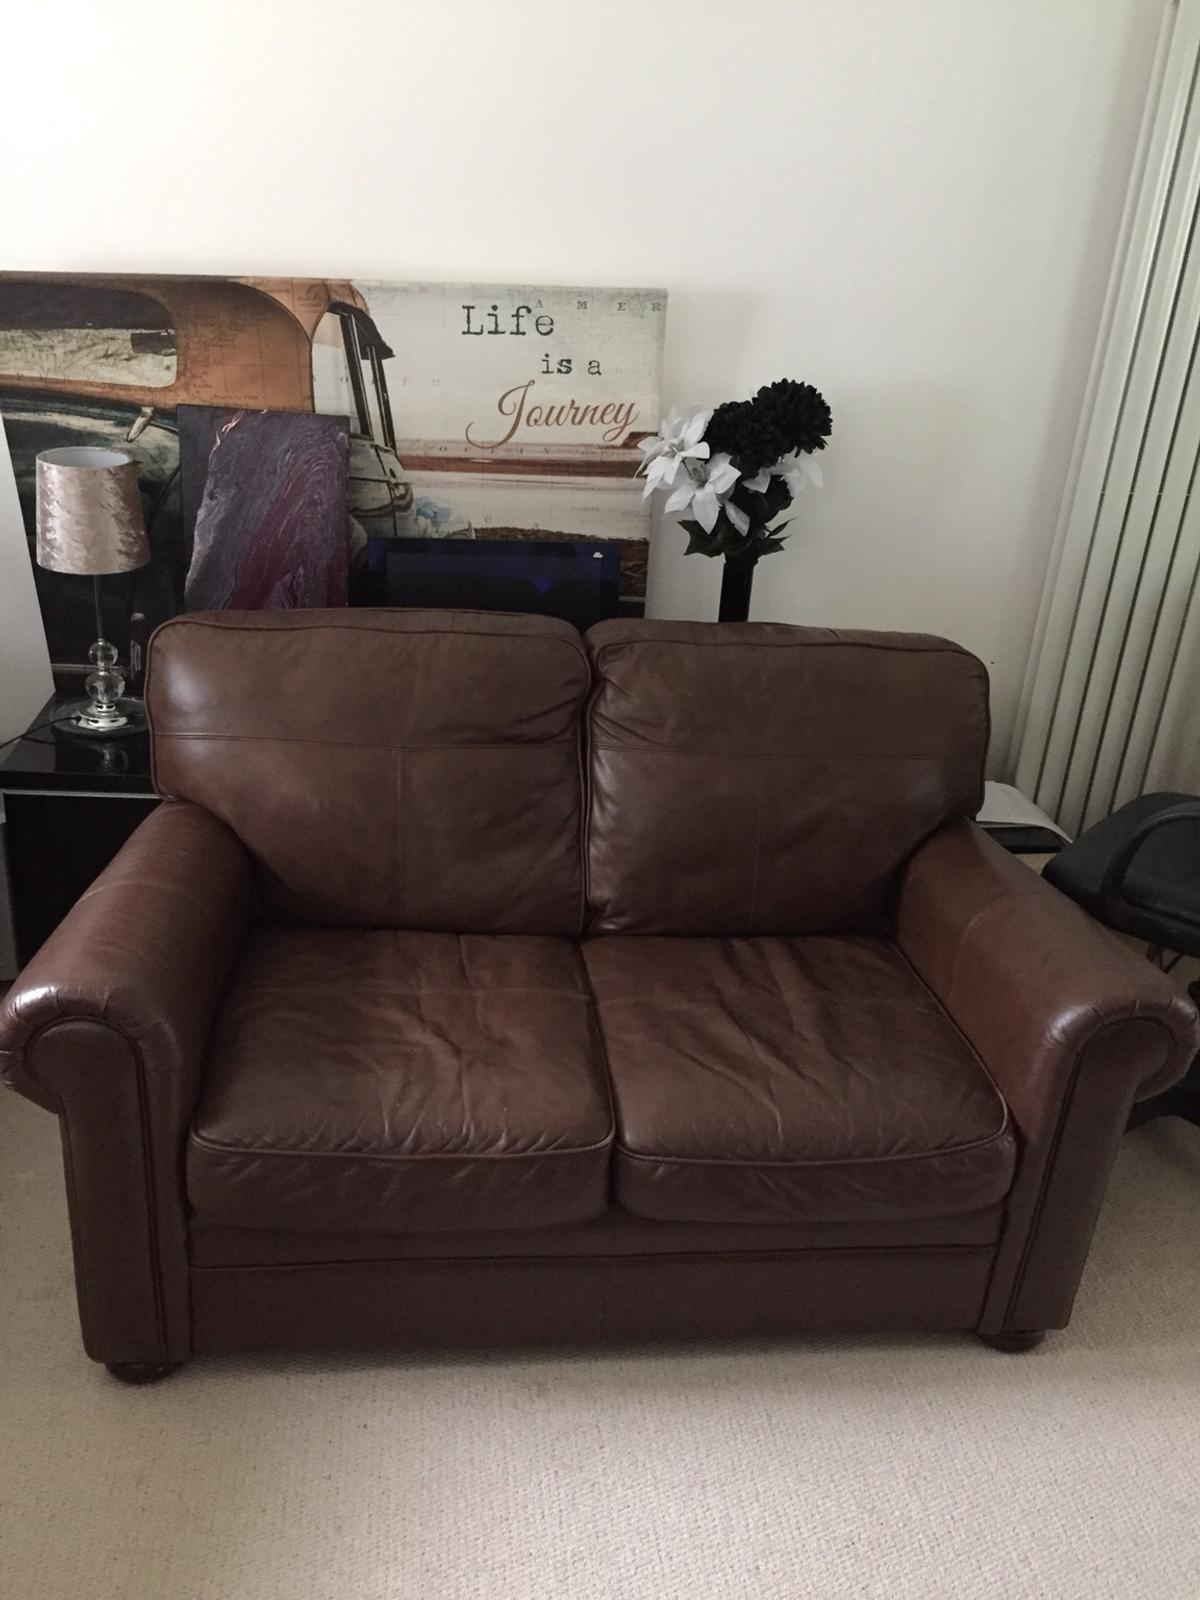 3 seater leather sofa bed + matching 2 seater